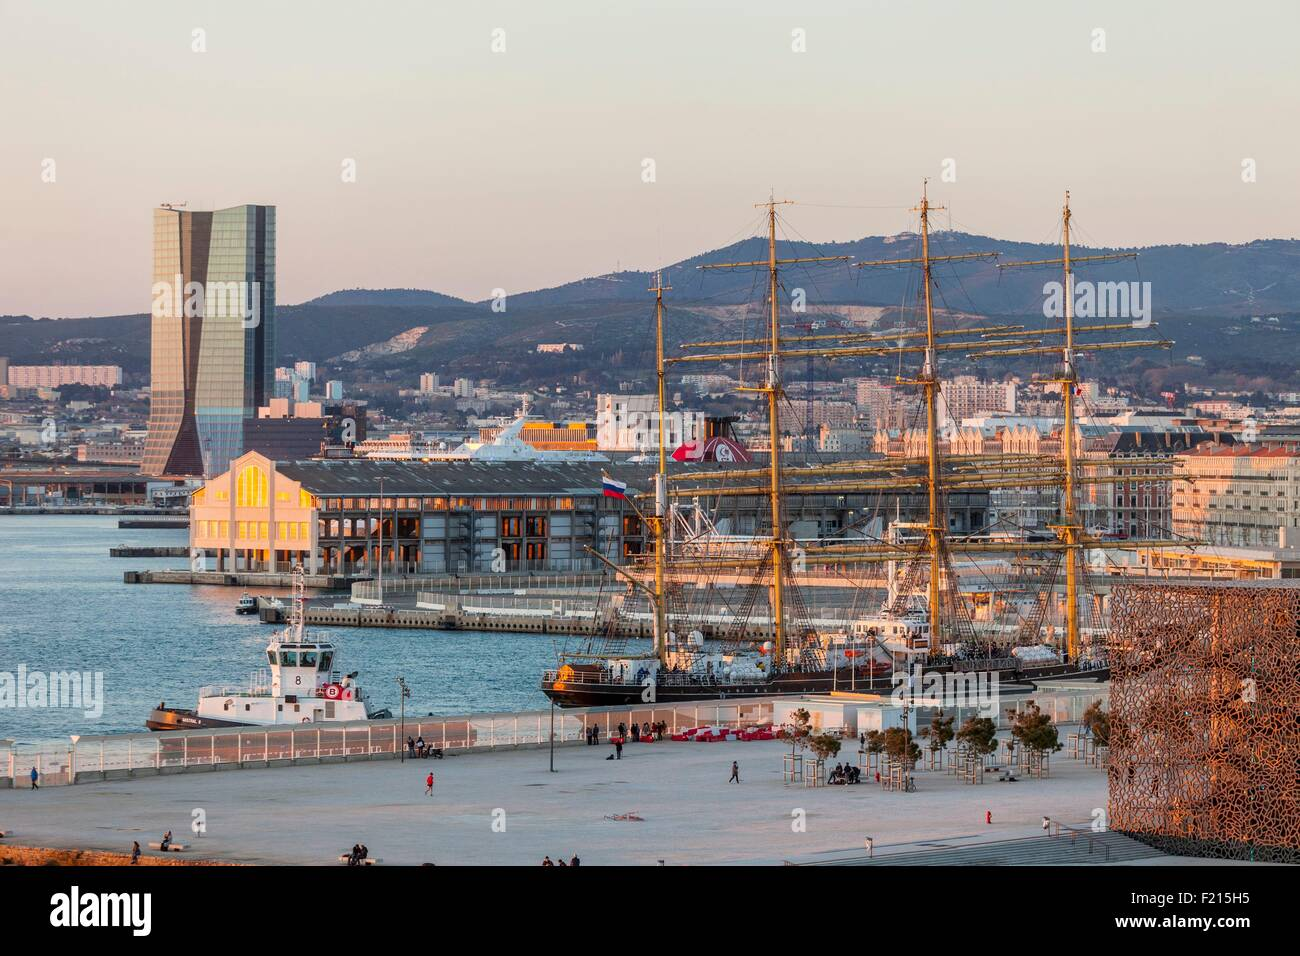 France, Bouches du Rhone, Marseille, the J4, CMA CGM tower by architect Zaha Hadid, and the Russian Krusenstern - Stock Image